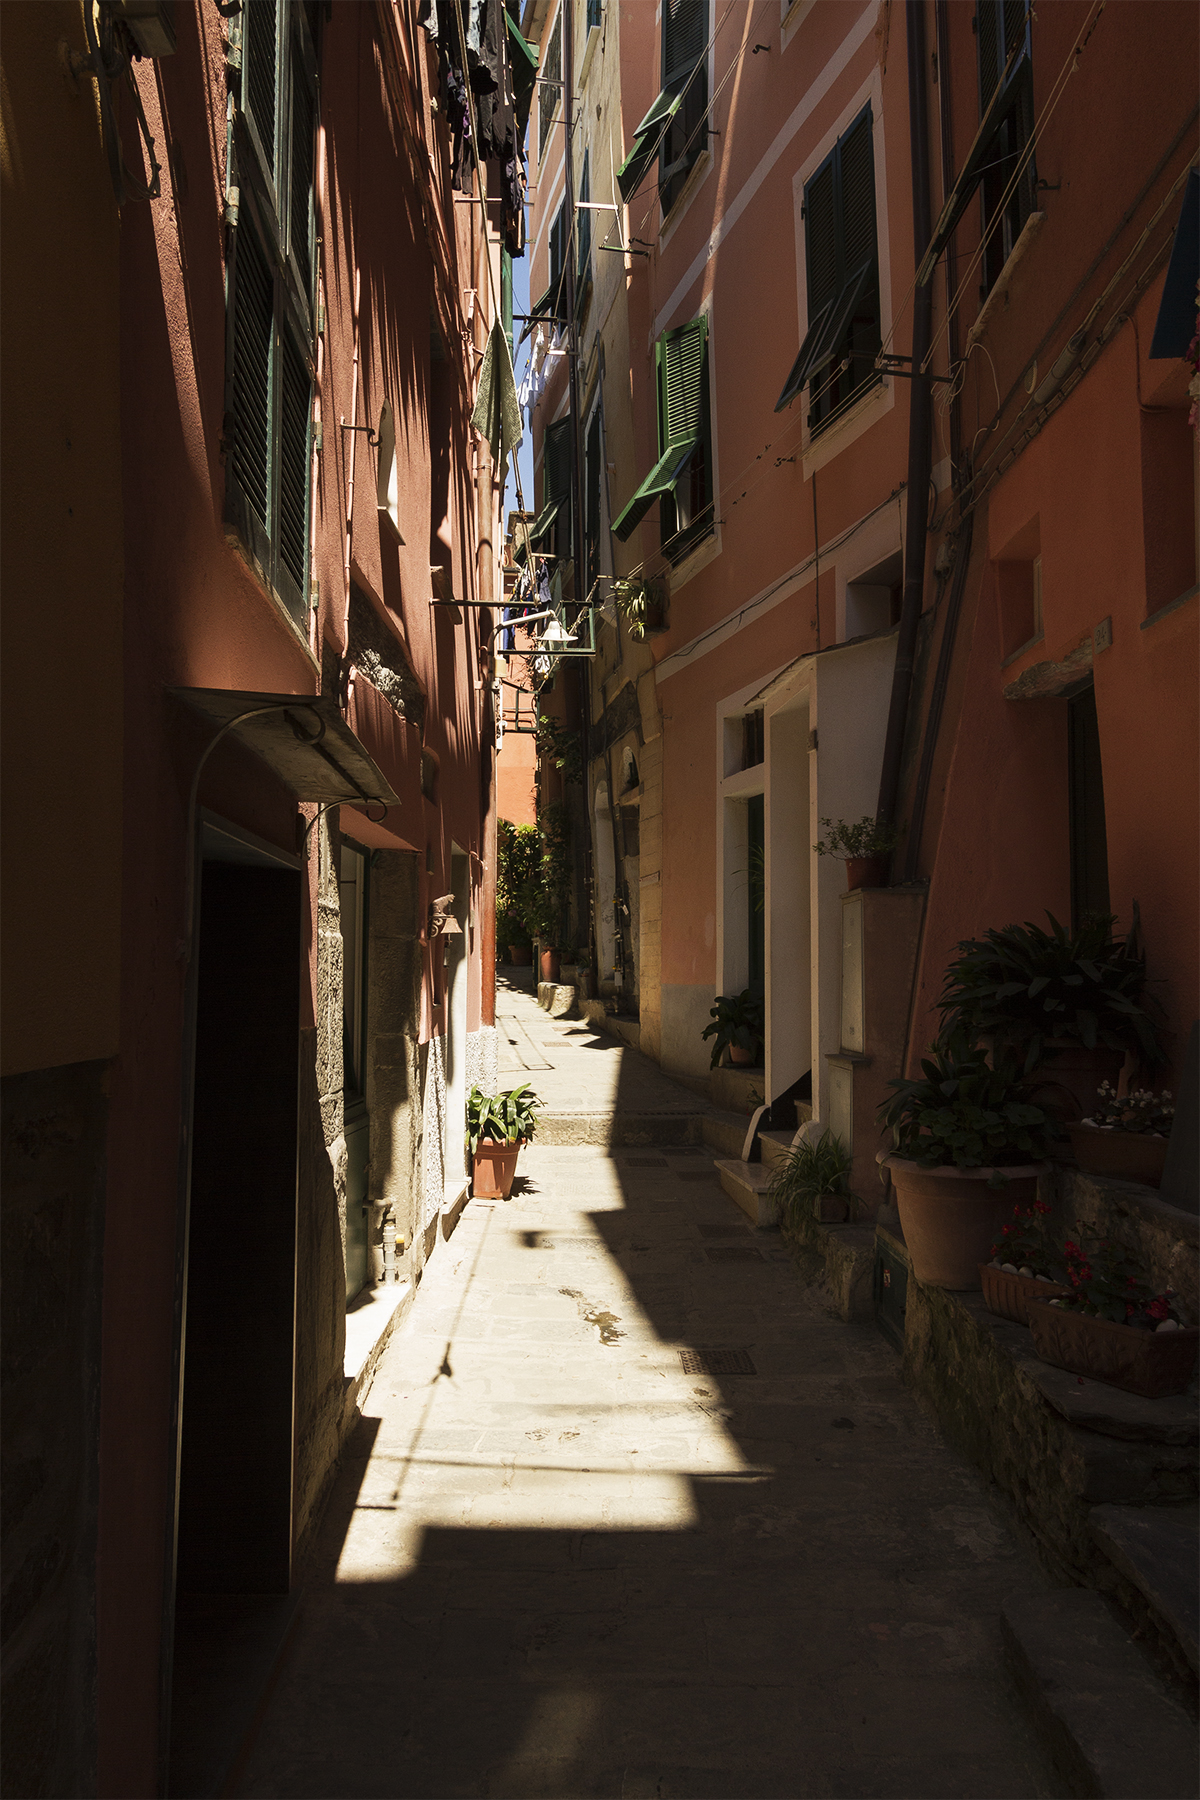 One of the many narrow alleyways of Riomaggiore